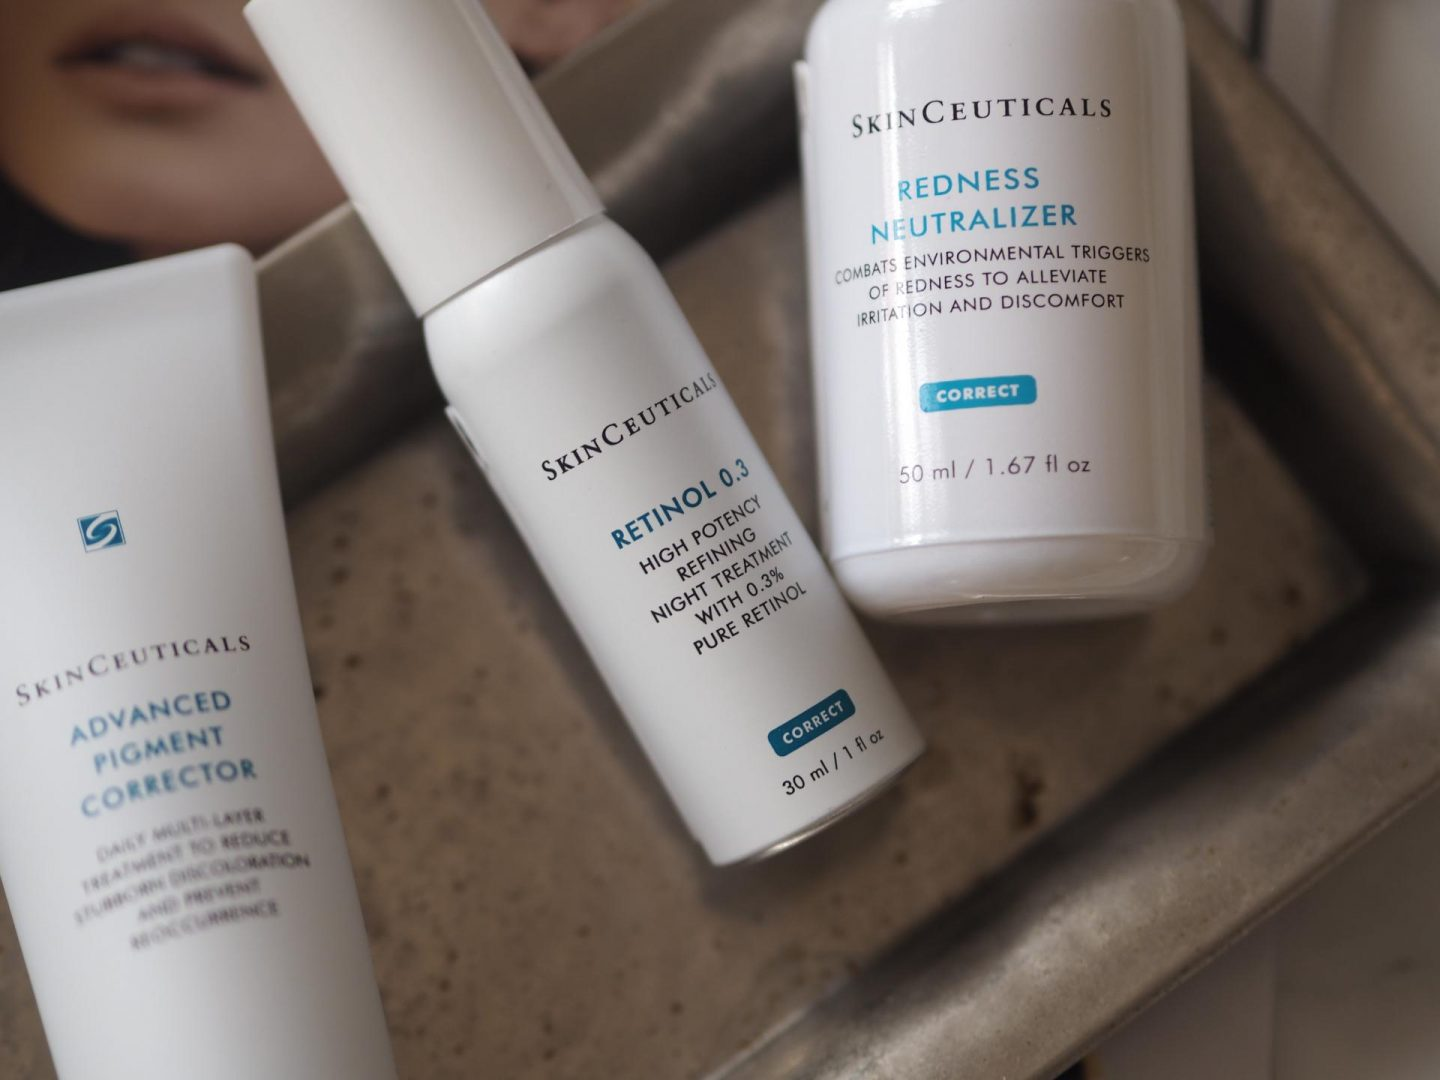 Skincare Products to Target Melasma - Product: SkinCeuticals Retinol 3.0